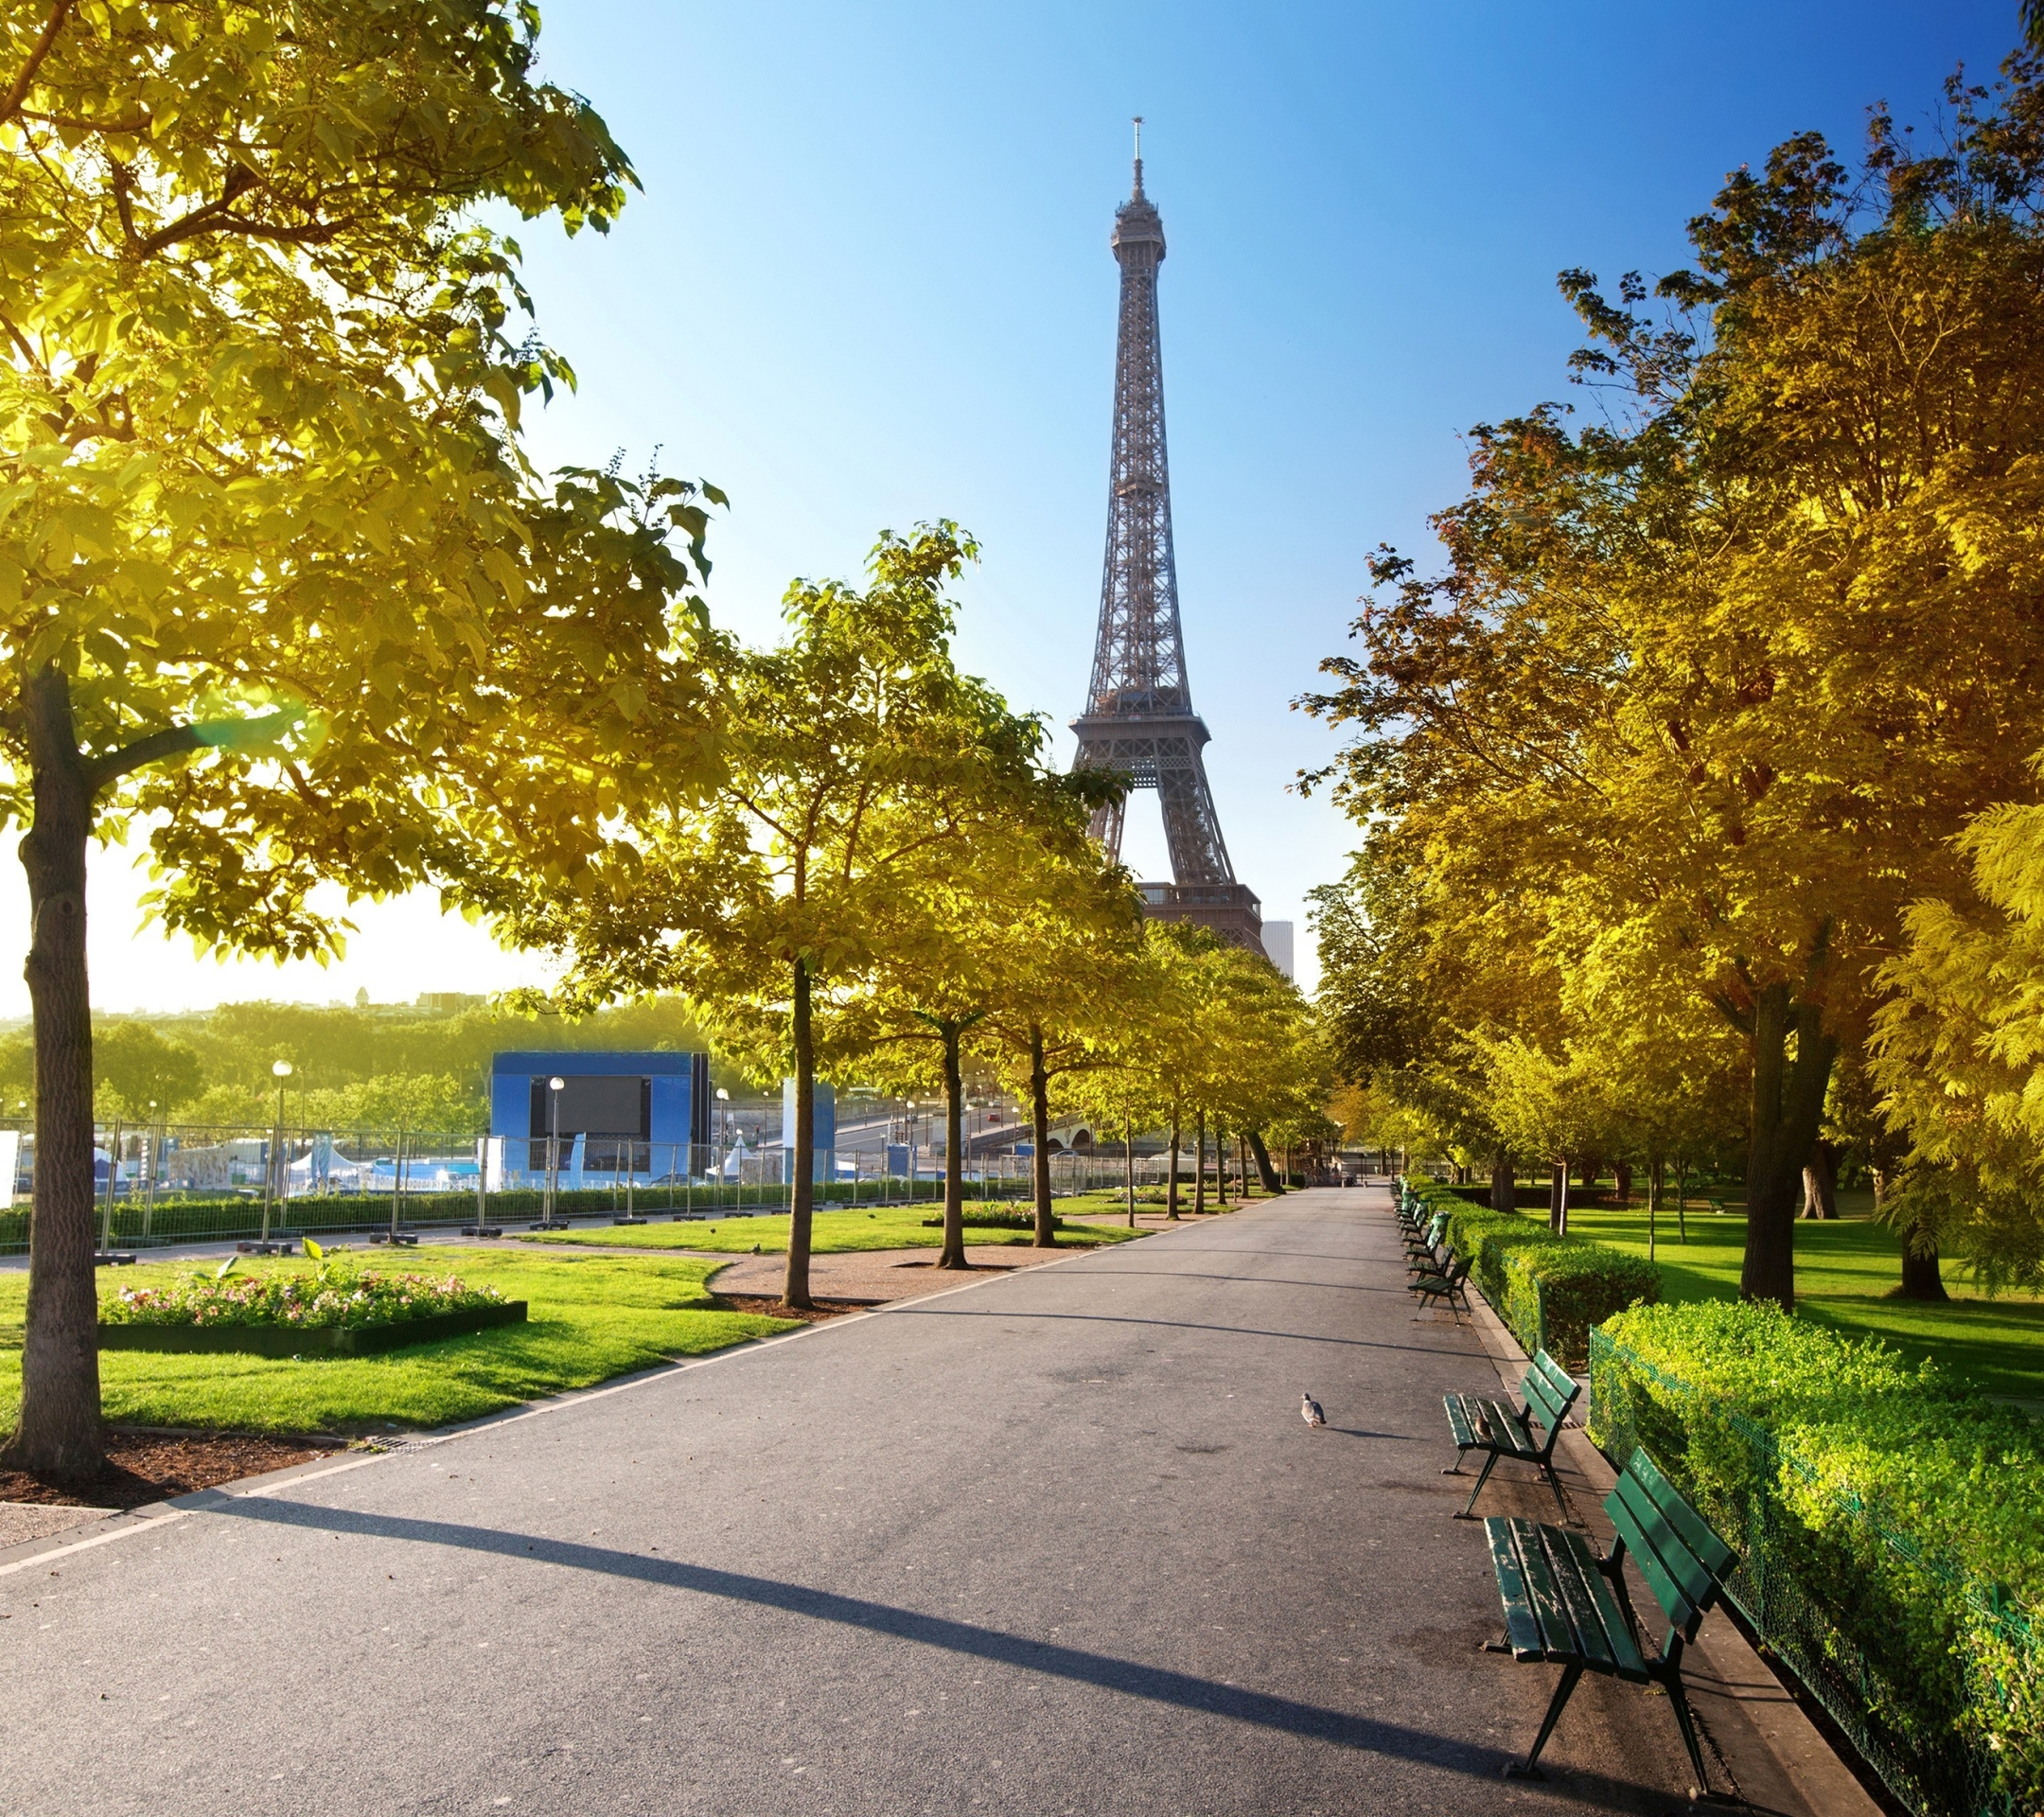 Man Made Eiffel Tower 2160x1920 Wallpaper Id 591942 Mobile Abyss